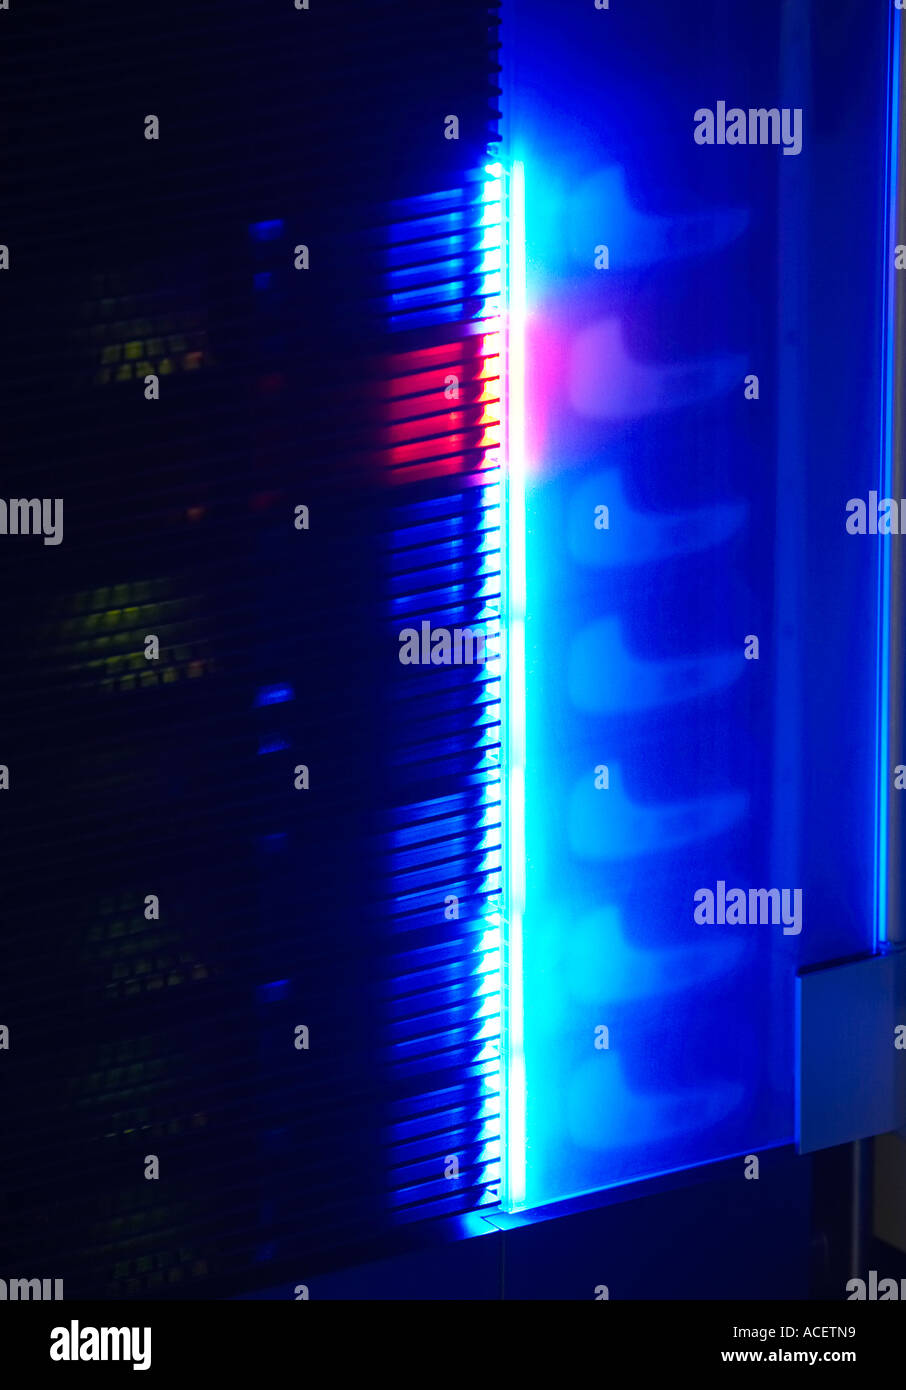 neon glow from a rack mounted network server at night stock photo